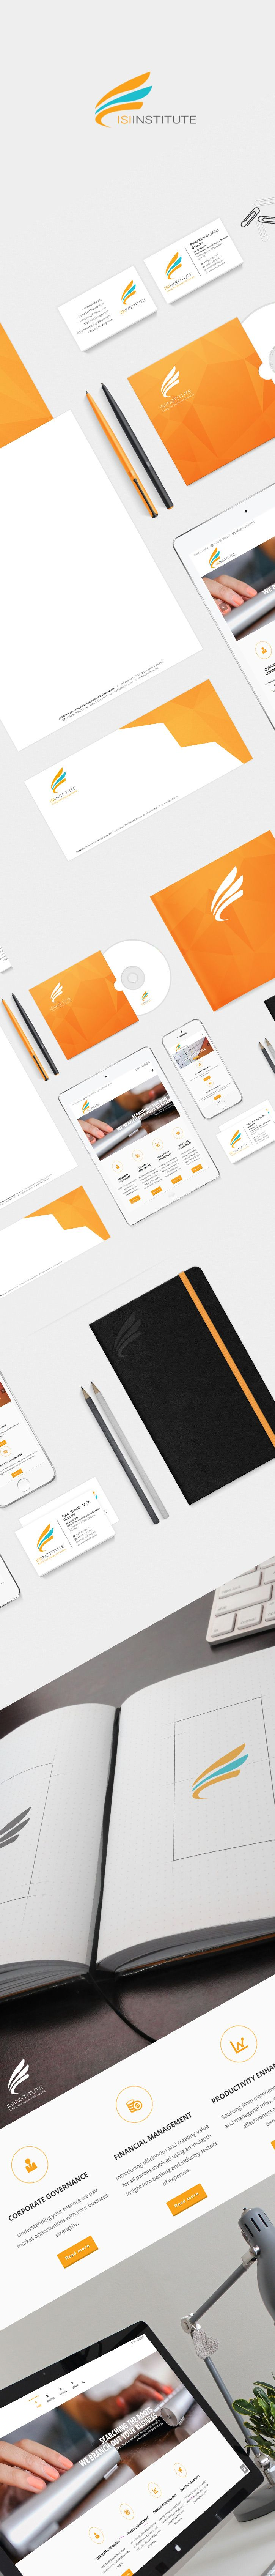 Branding and website for Euorpean Institute ISI.